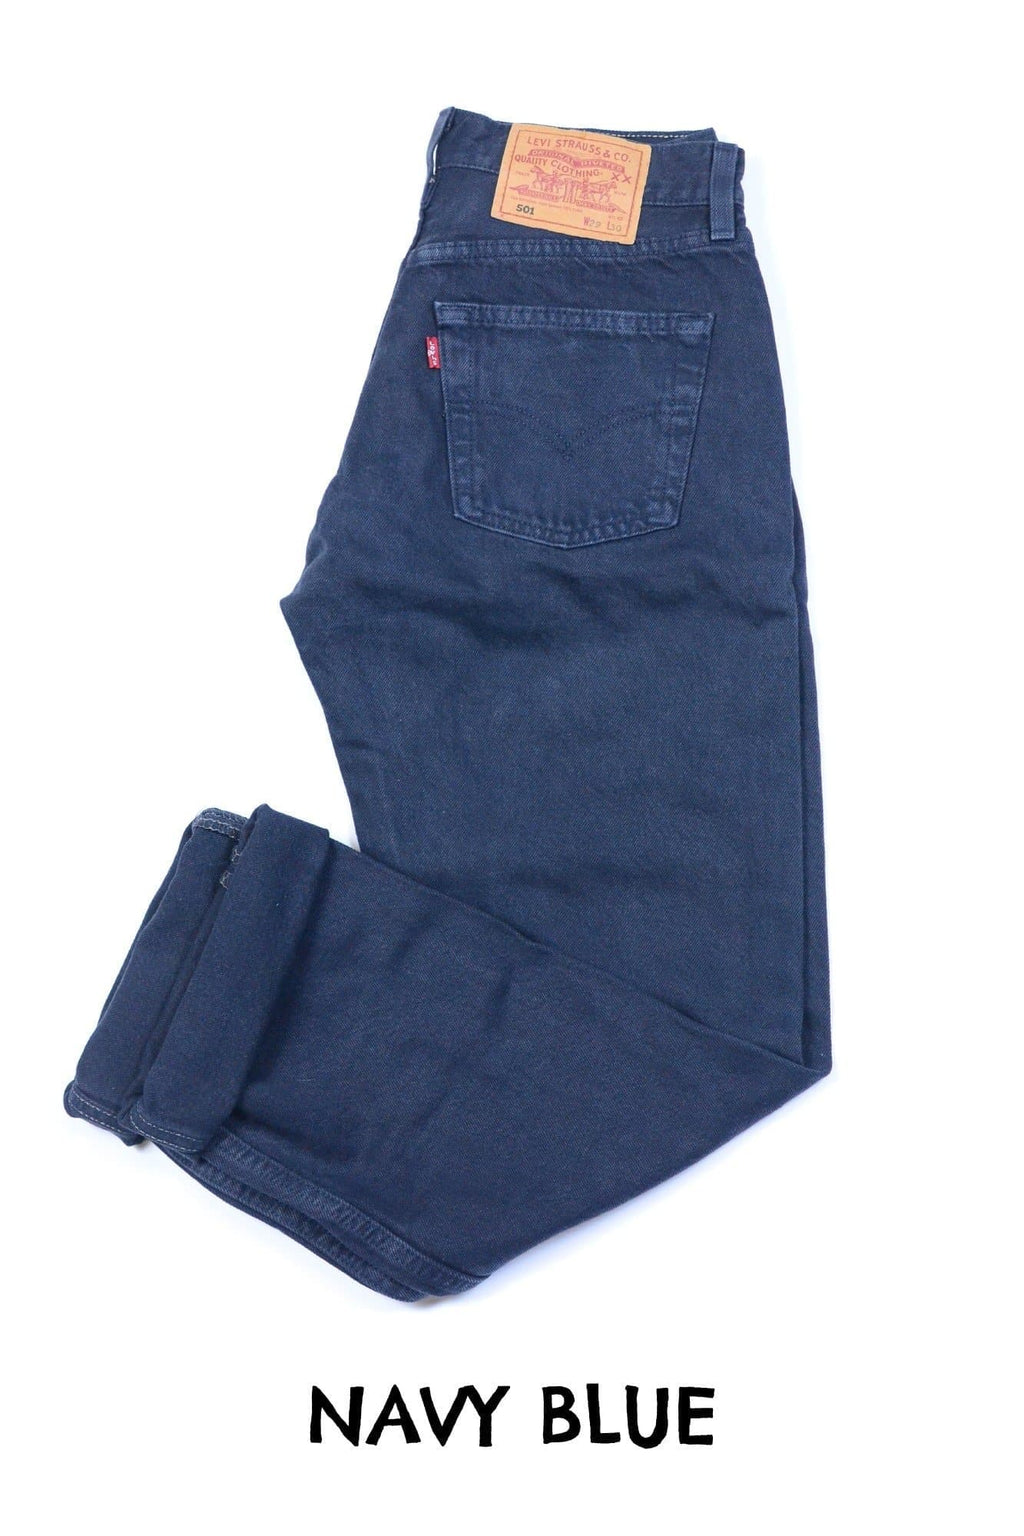 Vintage Levi's Navy Blue 501 Jeans Waist 44 Length 32 - Discounted Deals UK